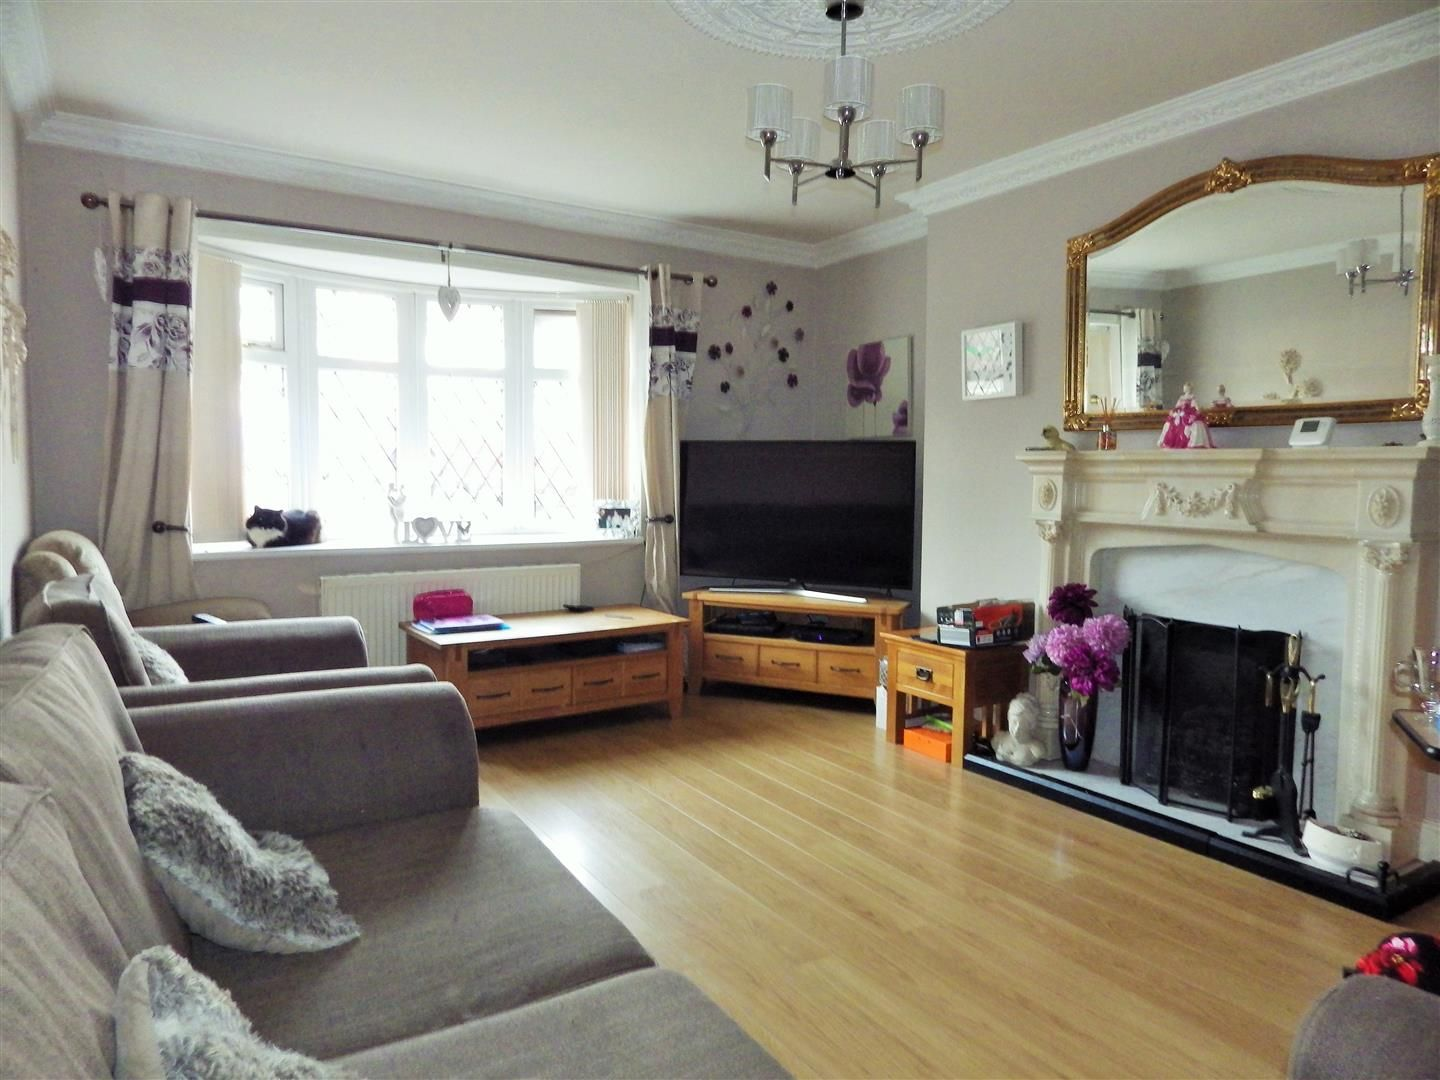 4 bed semi-detached for sale in Quinton  - Property Image 2